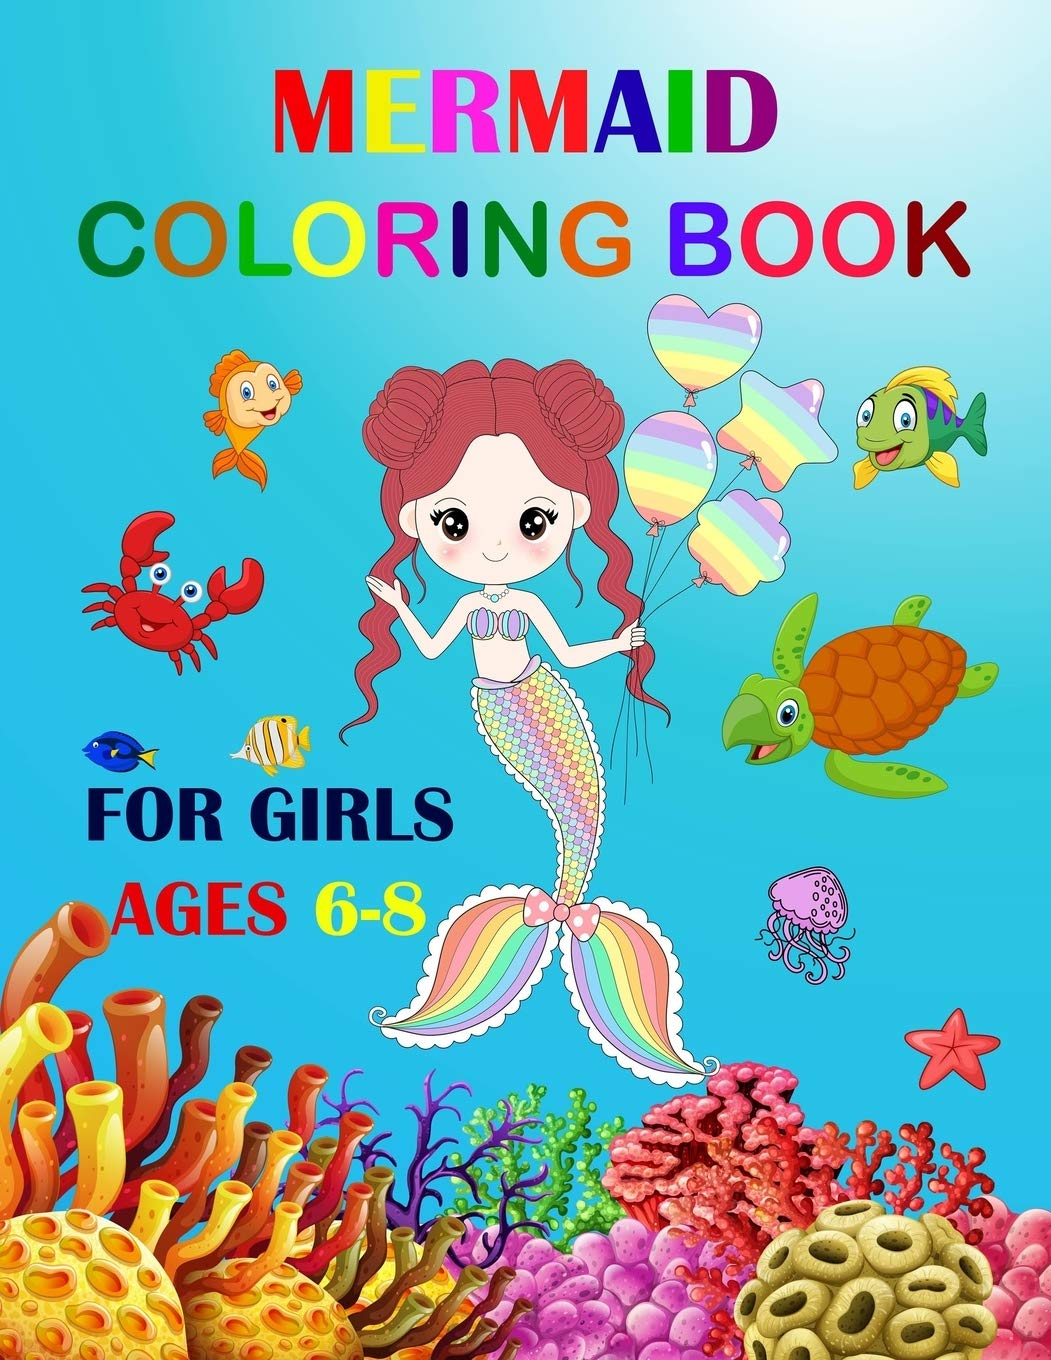 Printable Baby Animal Coloring Pages Coloring Pages Of Cute Baby ... | 1360x1051